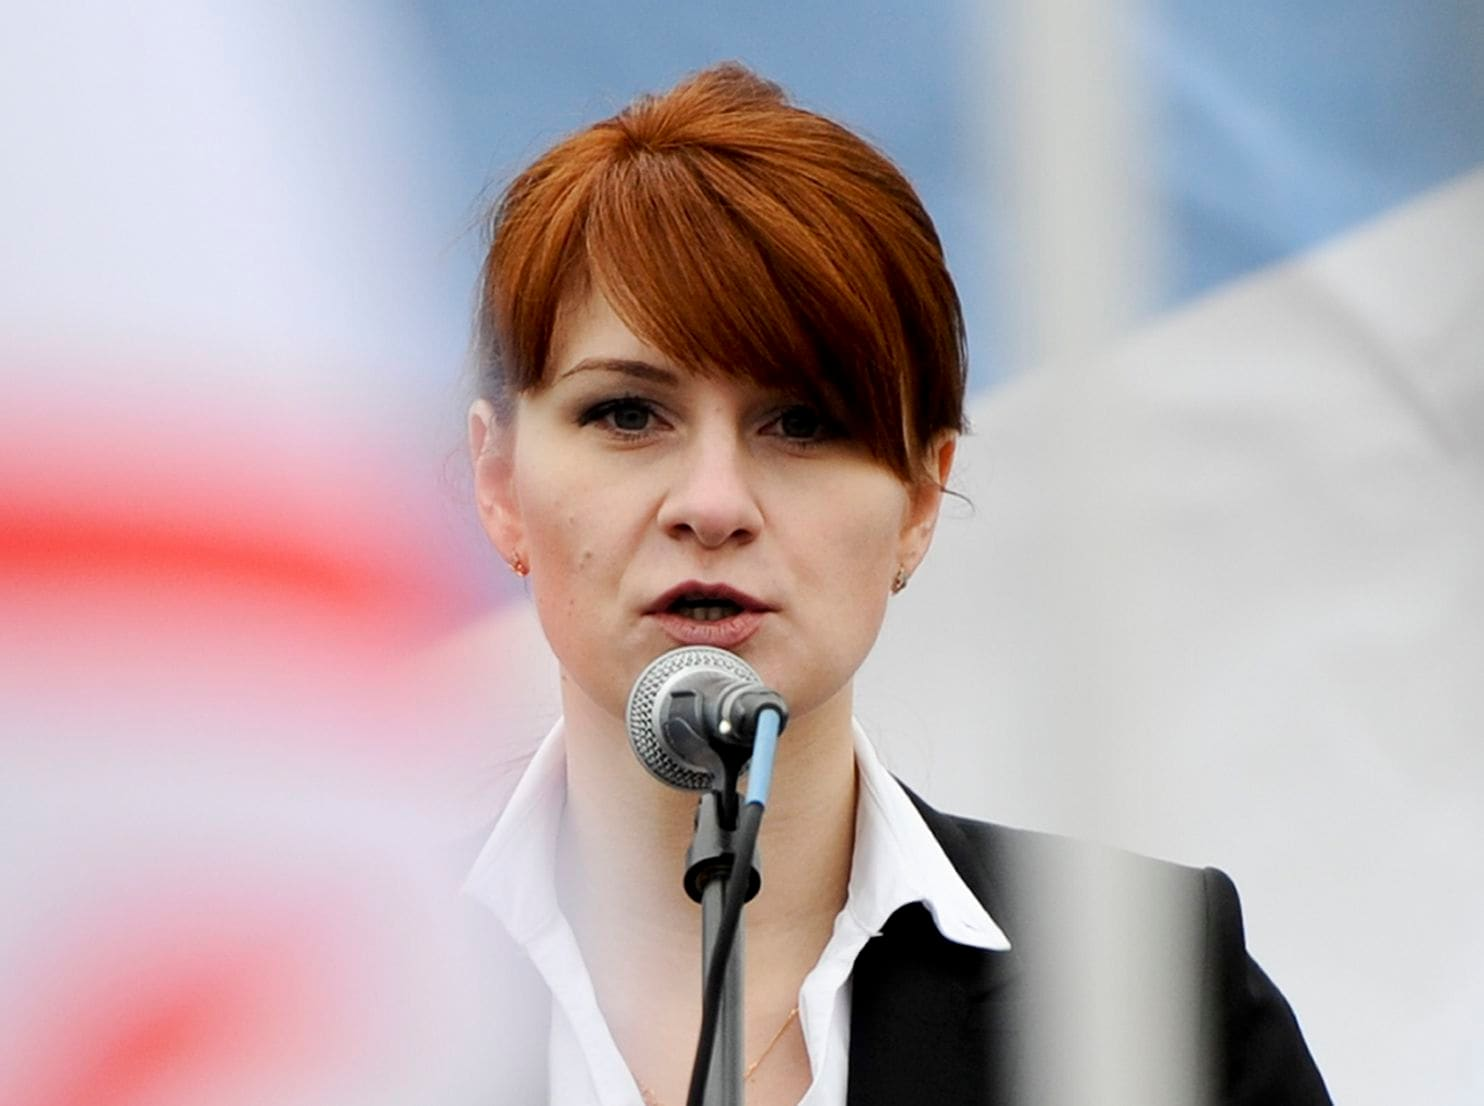 Released Agent Butina Is Offered Human Rights Post by Russia